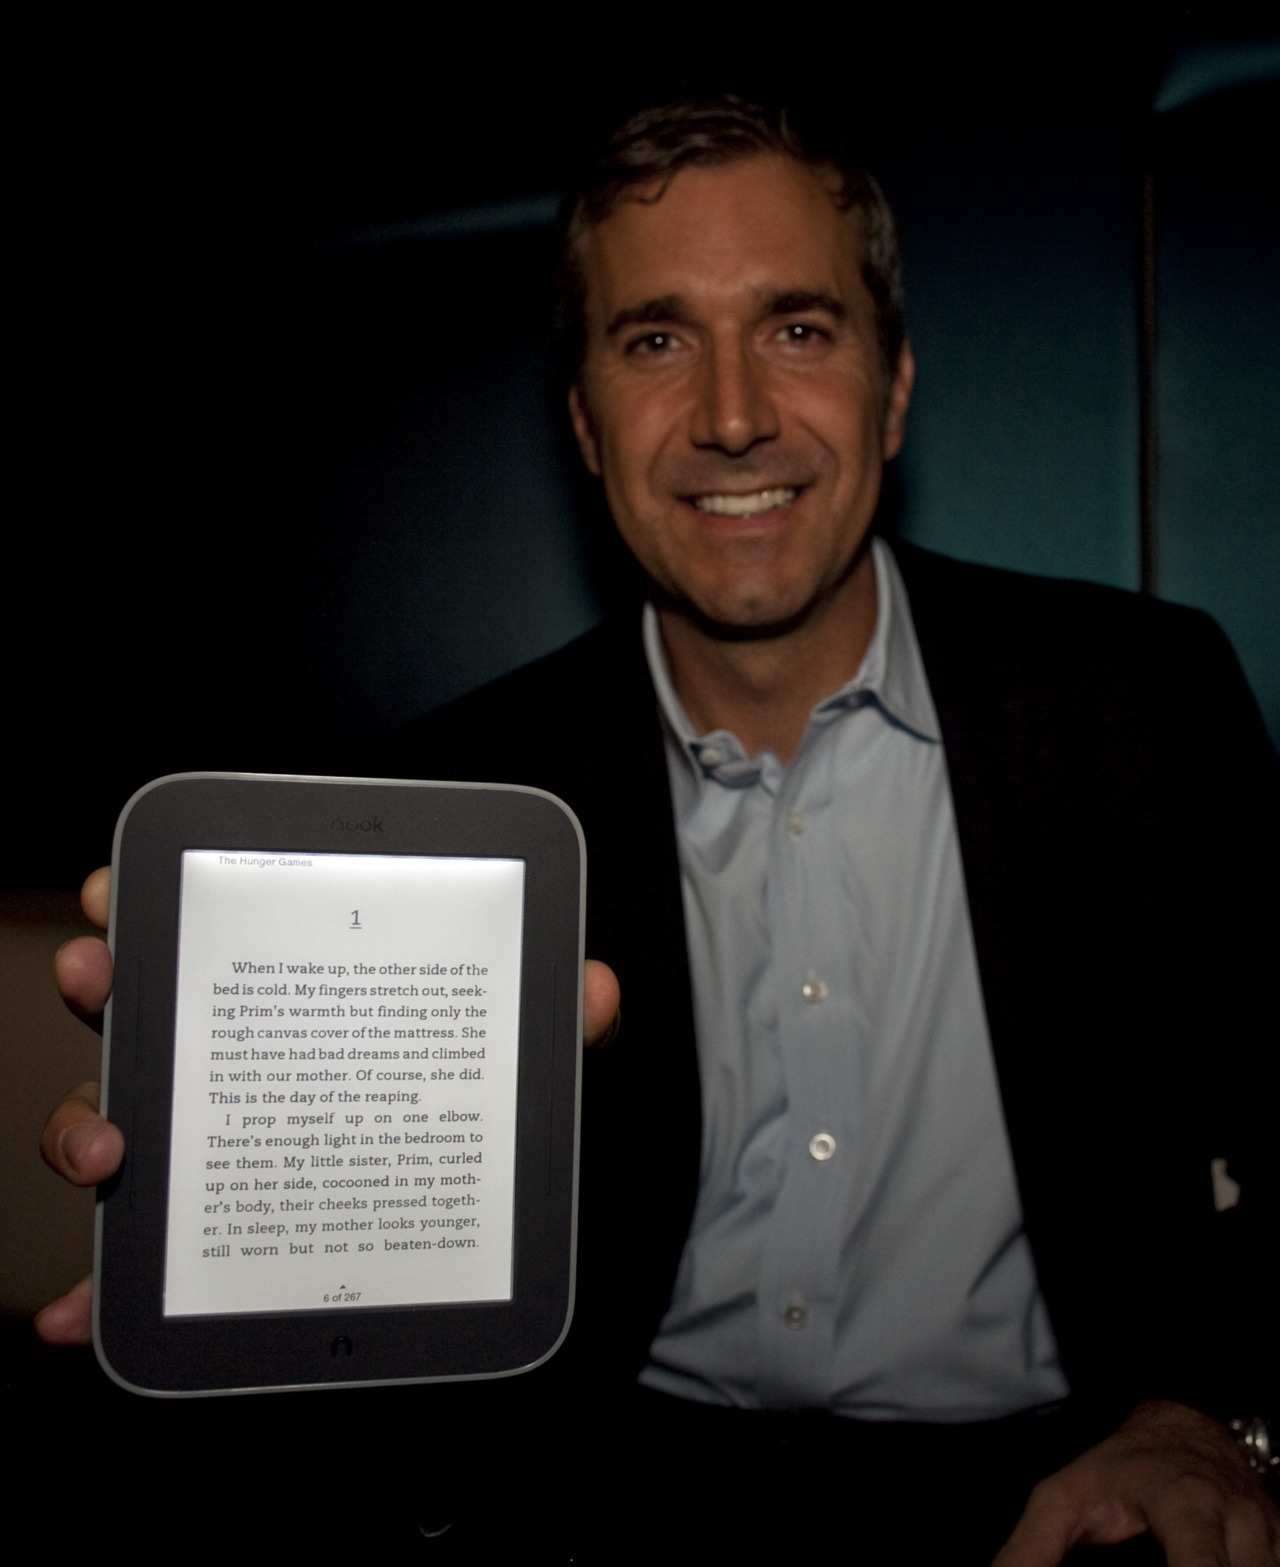 Barnes & Noble, Microsoft get cozy over Nook e-reader Microsoft Corp will invest $300 million in Barnes & Noble Inc's Nook e-reader, gaining a foothold in the fast-growing e-books market as the bookseller gets more firepower to compete against Amazon.com's Kindle and Apple Inc's iPad. The move comes as Microsoft is looking to generate excitement around its tablet-friendly Windows 8 operating system, expected on the market around October. The deal announced on Monday includes Microsoft taking a stake in the bookseller's college bookstore division. It also means that the two companies have settled their patent dispute. Shares of Barnes & Noble soared nearly 70 percent on Monday, while Microsoft shares were nearly flat. The agreement values the Nook and textbook businesses, which will form a new subsidiary, at $1.7 billion. READ MORE: Microsoft buys Nook stake; B&N shares soar